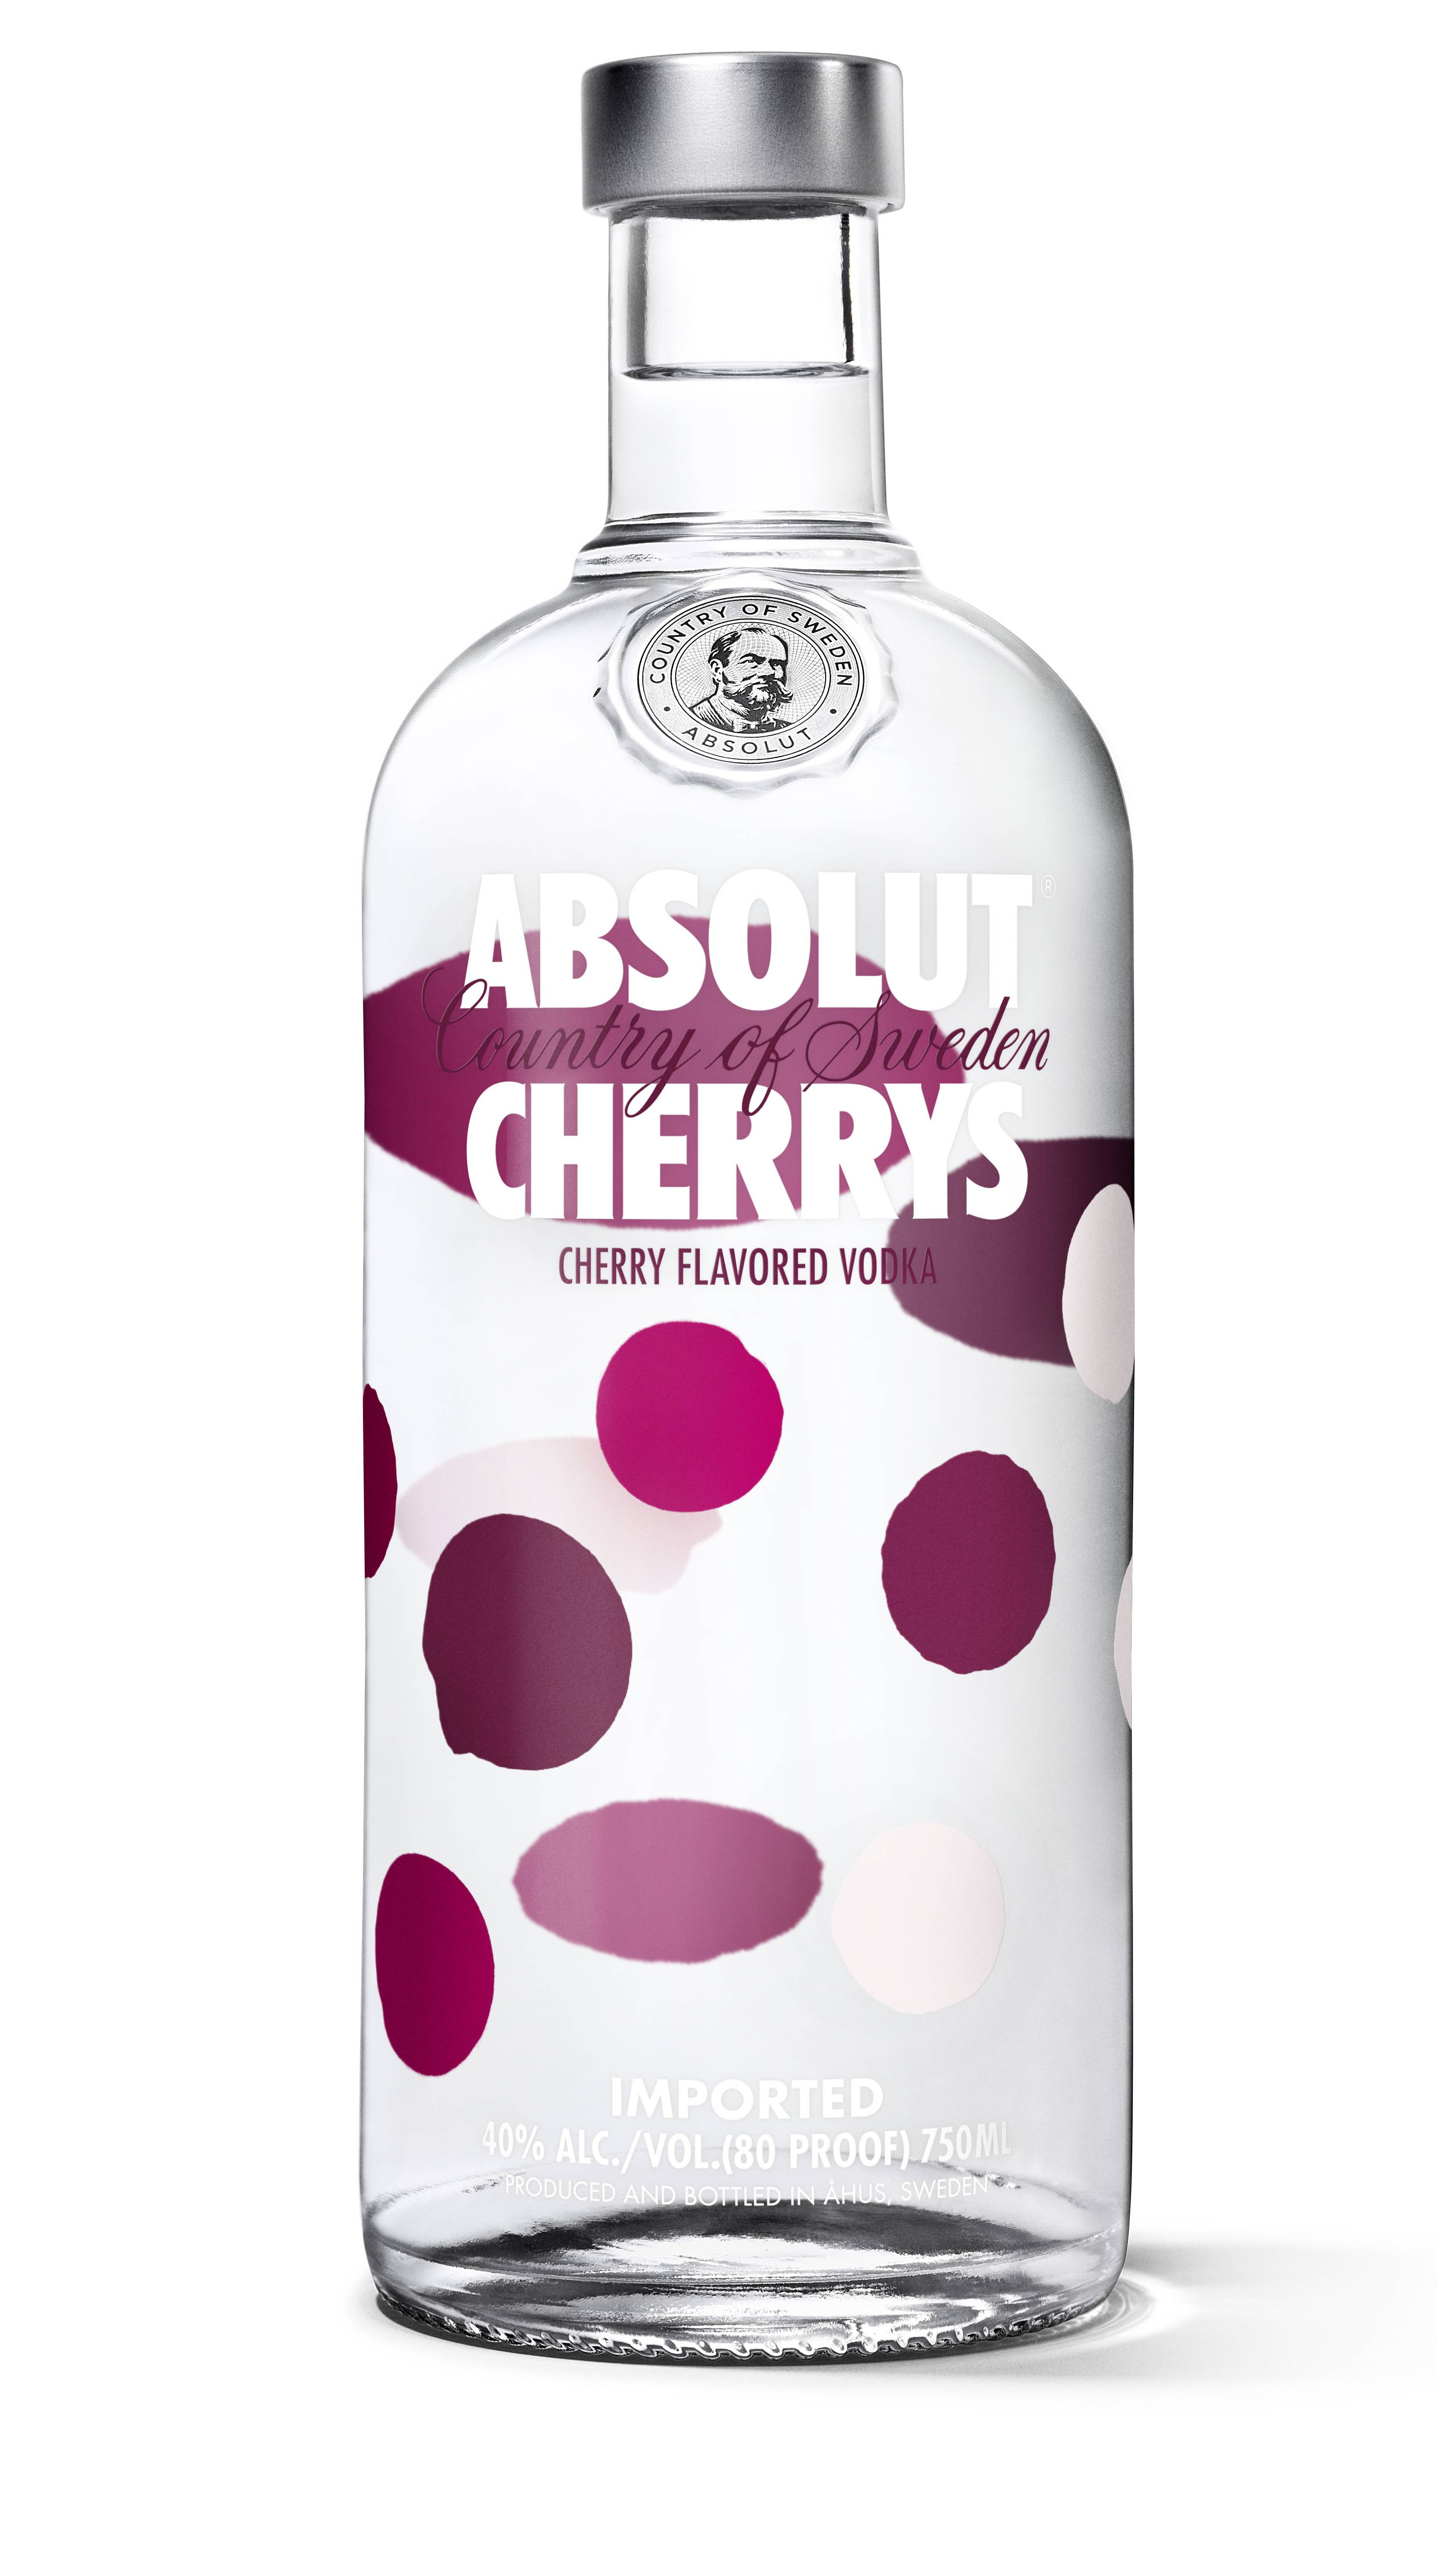 Absolut-Cherrys-White-Background-2